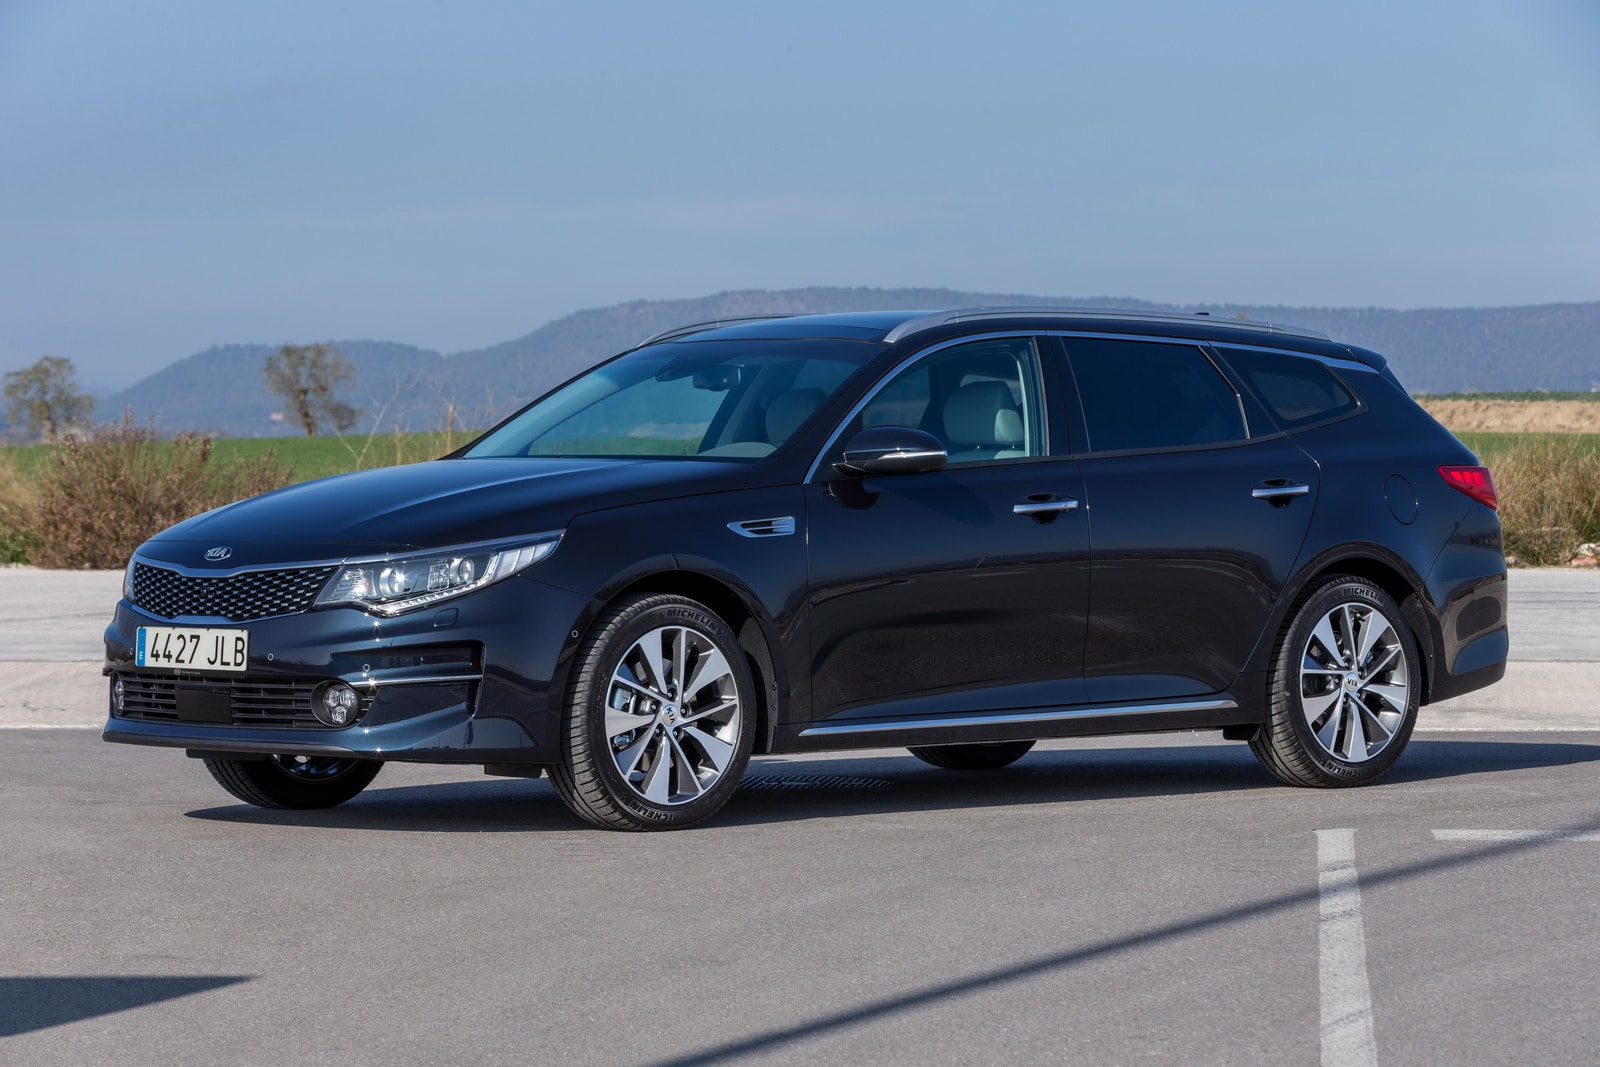 La Kia Optima s'électrise et s'allonge